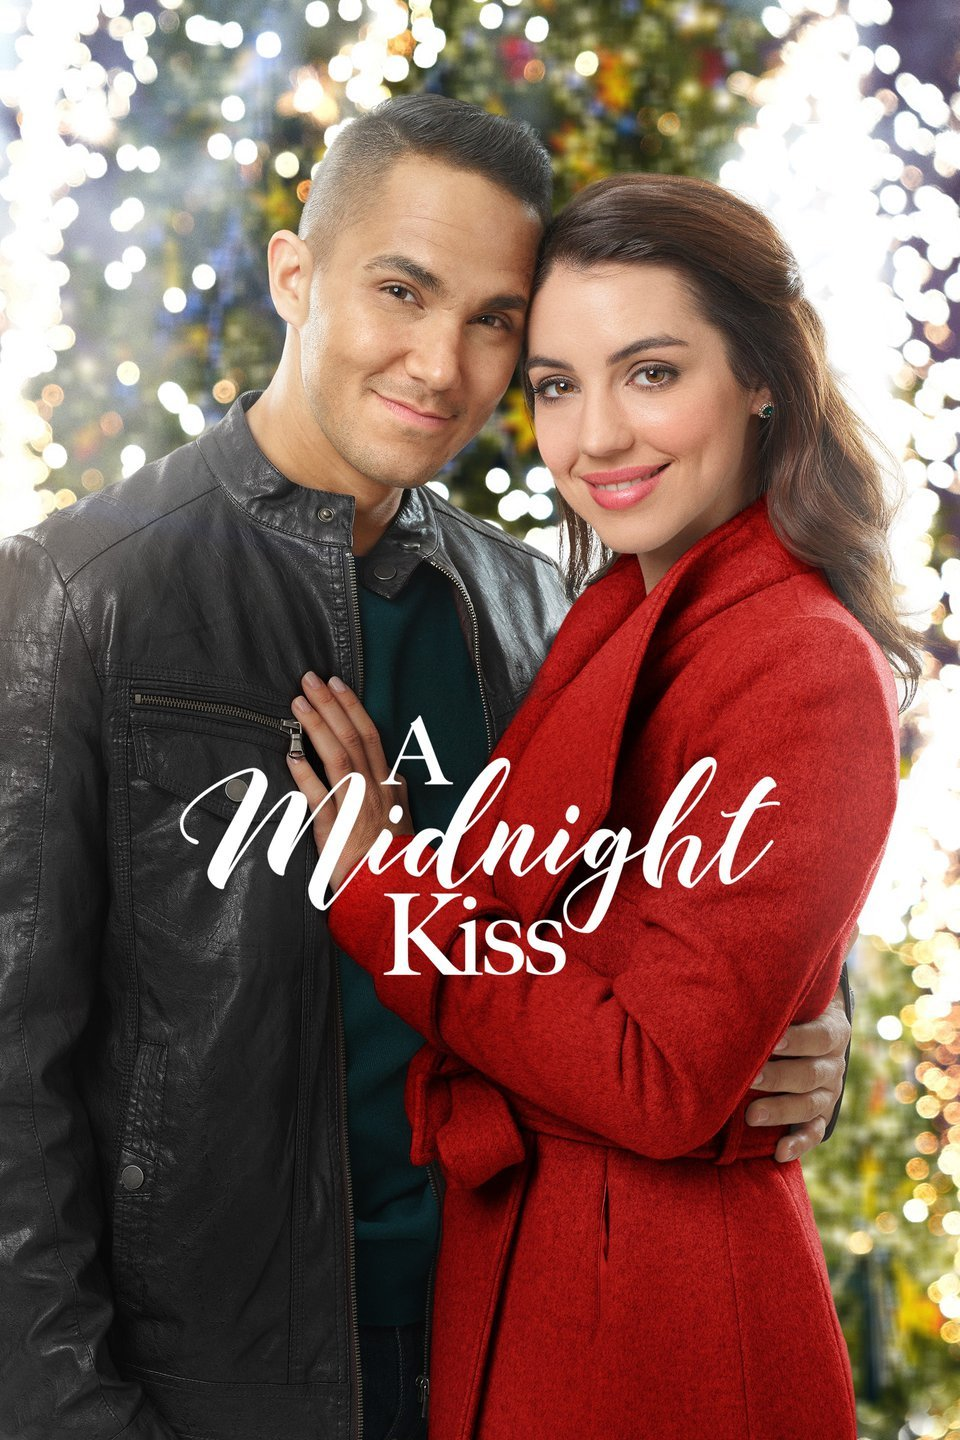 Cast Of A Christmas Kiss.Hitched For The Holidays 2012 October Kiss 2015 A